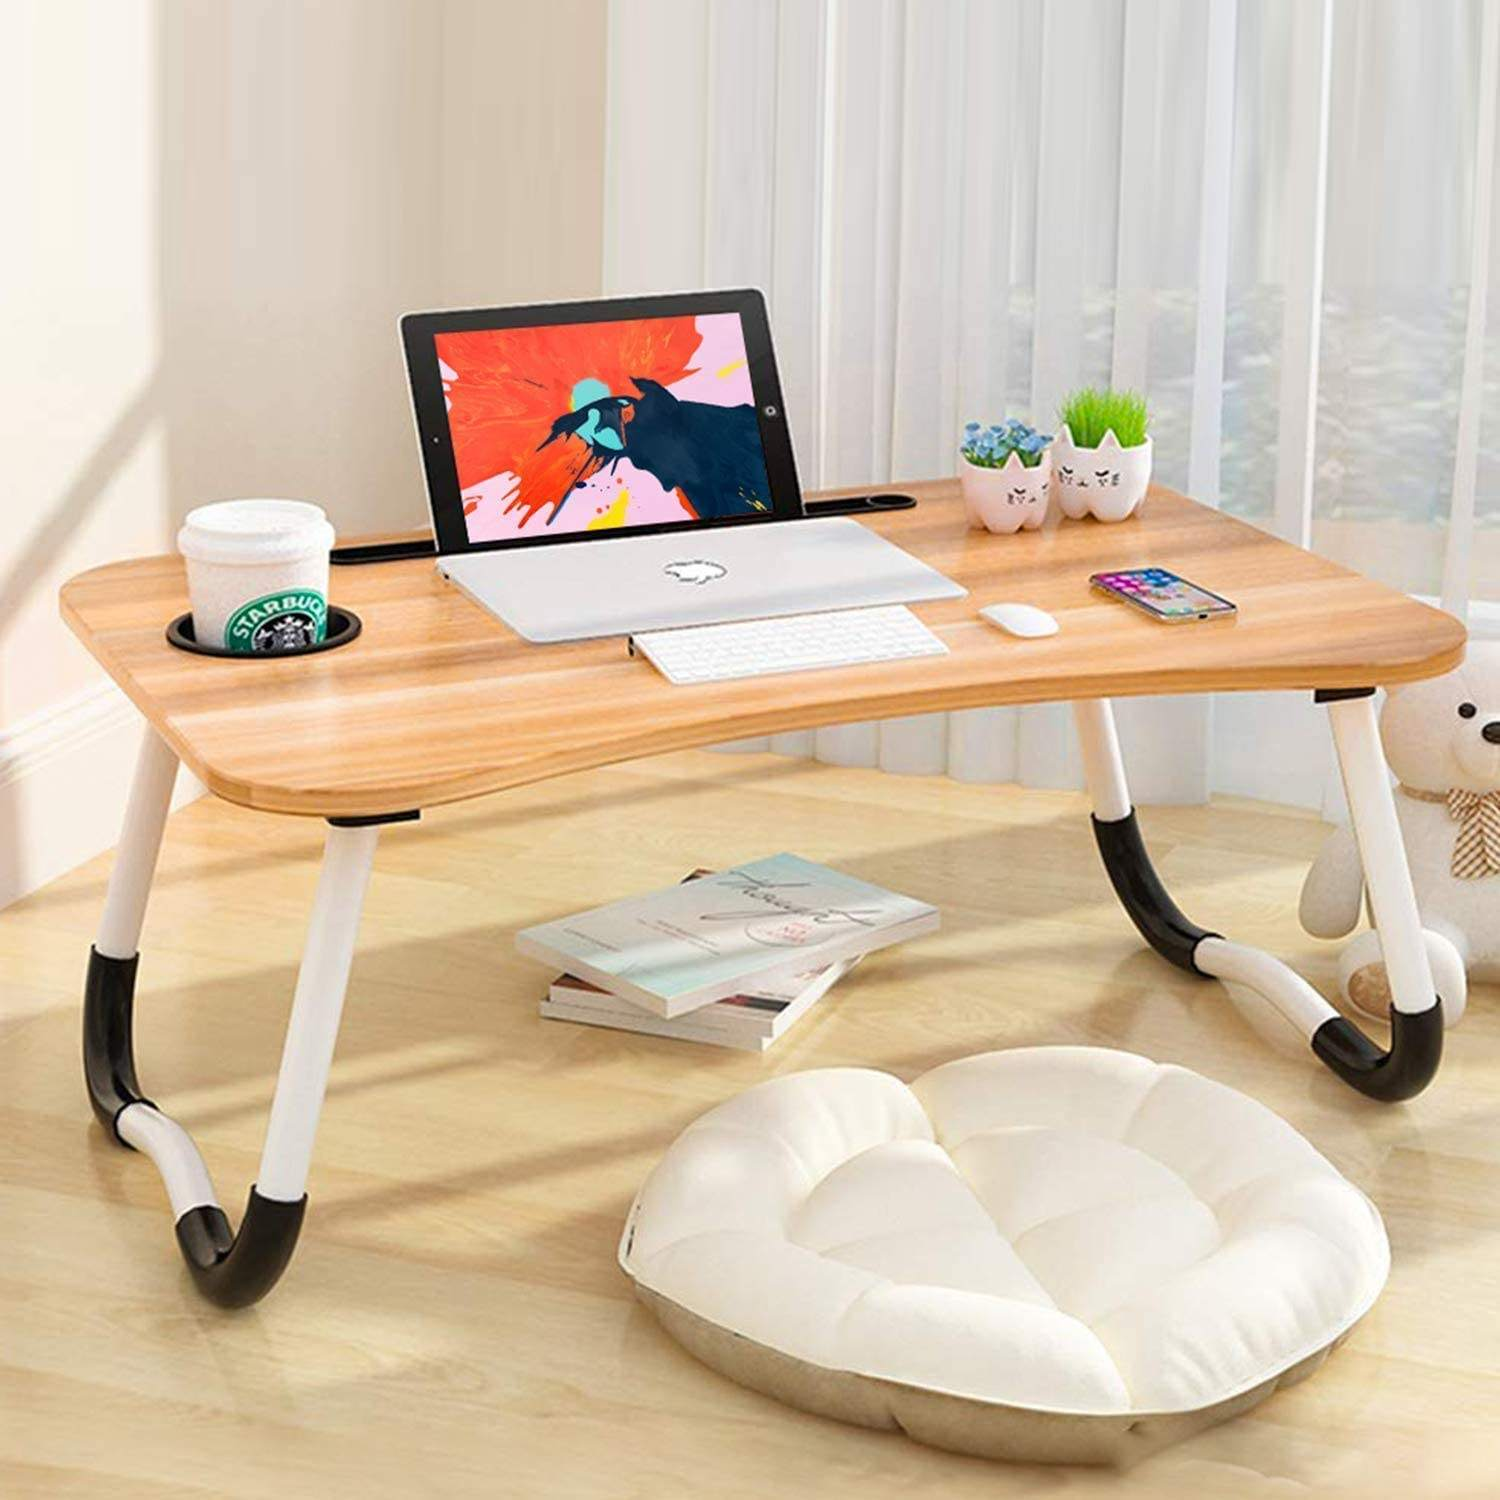 Wooden Folding Laptop Table,Laptop Table Adjustable Bed Desk,Laptop Bed Wooden Foldable Table